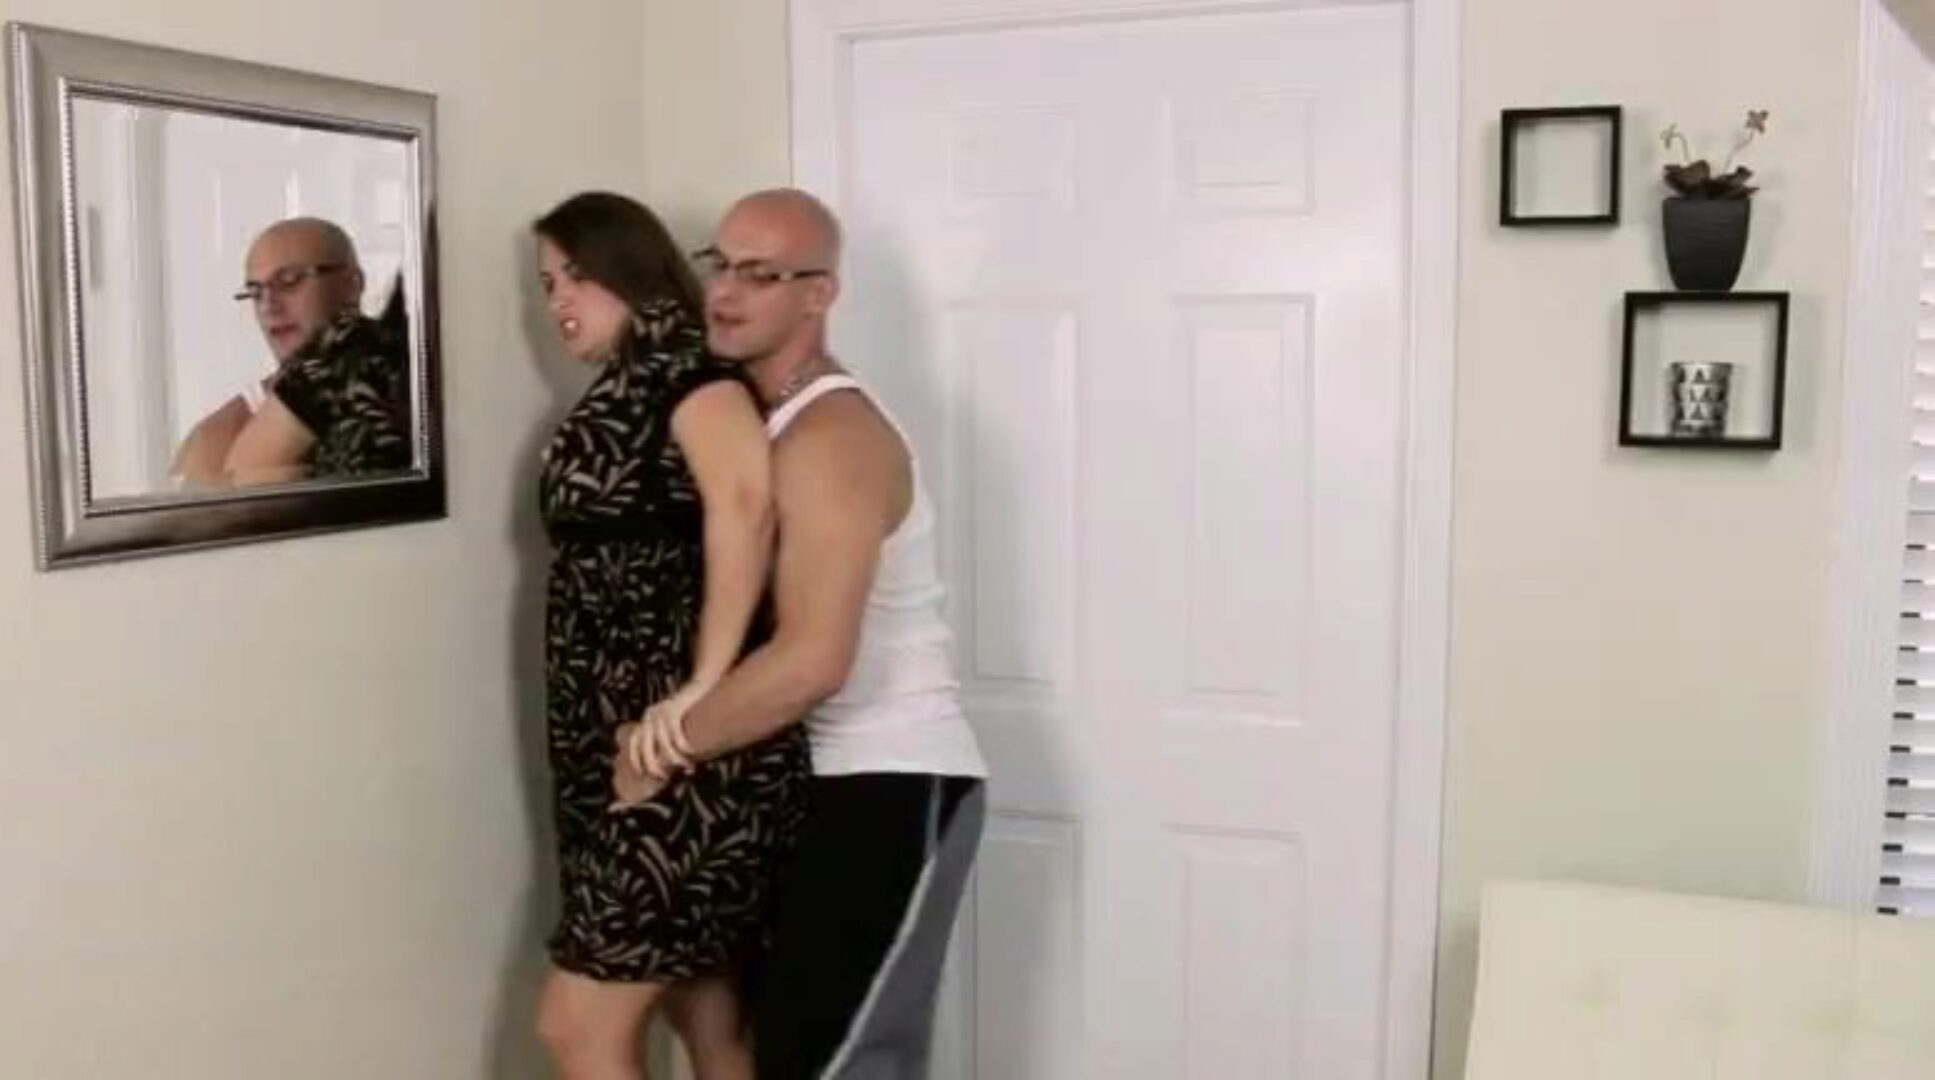 Son Fuck His Slutty Step Mother - Free Porn Videos - YouPorn Watch son-in-law fuck his sexually excited step mom online on YouPorn.com. YouPorn is the thickest Amateur porno episode website with the hottest selection of free-for-all high quality kitchen videos Enjoy our HD porno episodes on any tool of your choosing!